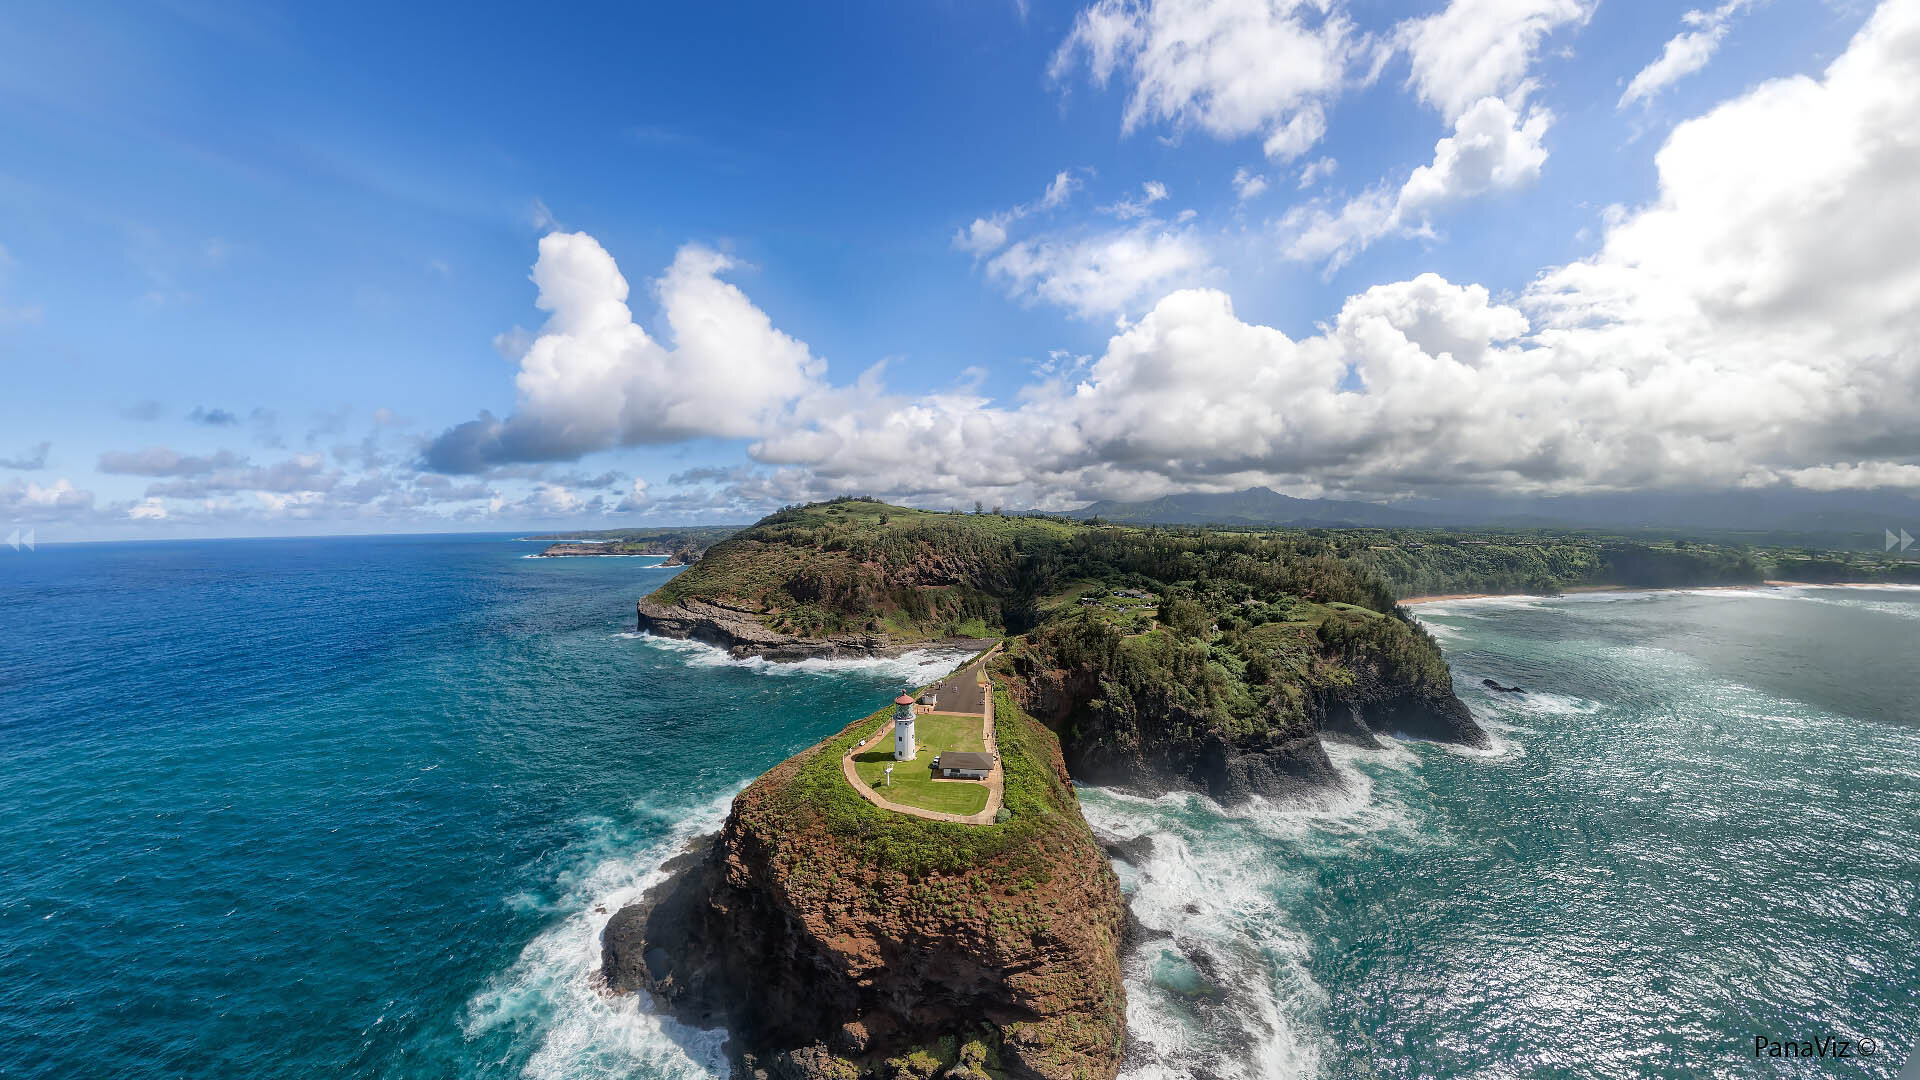 Kilauea Lighthouse Aerial Panorama